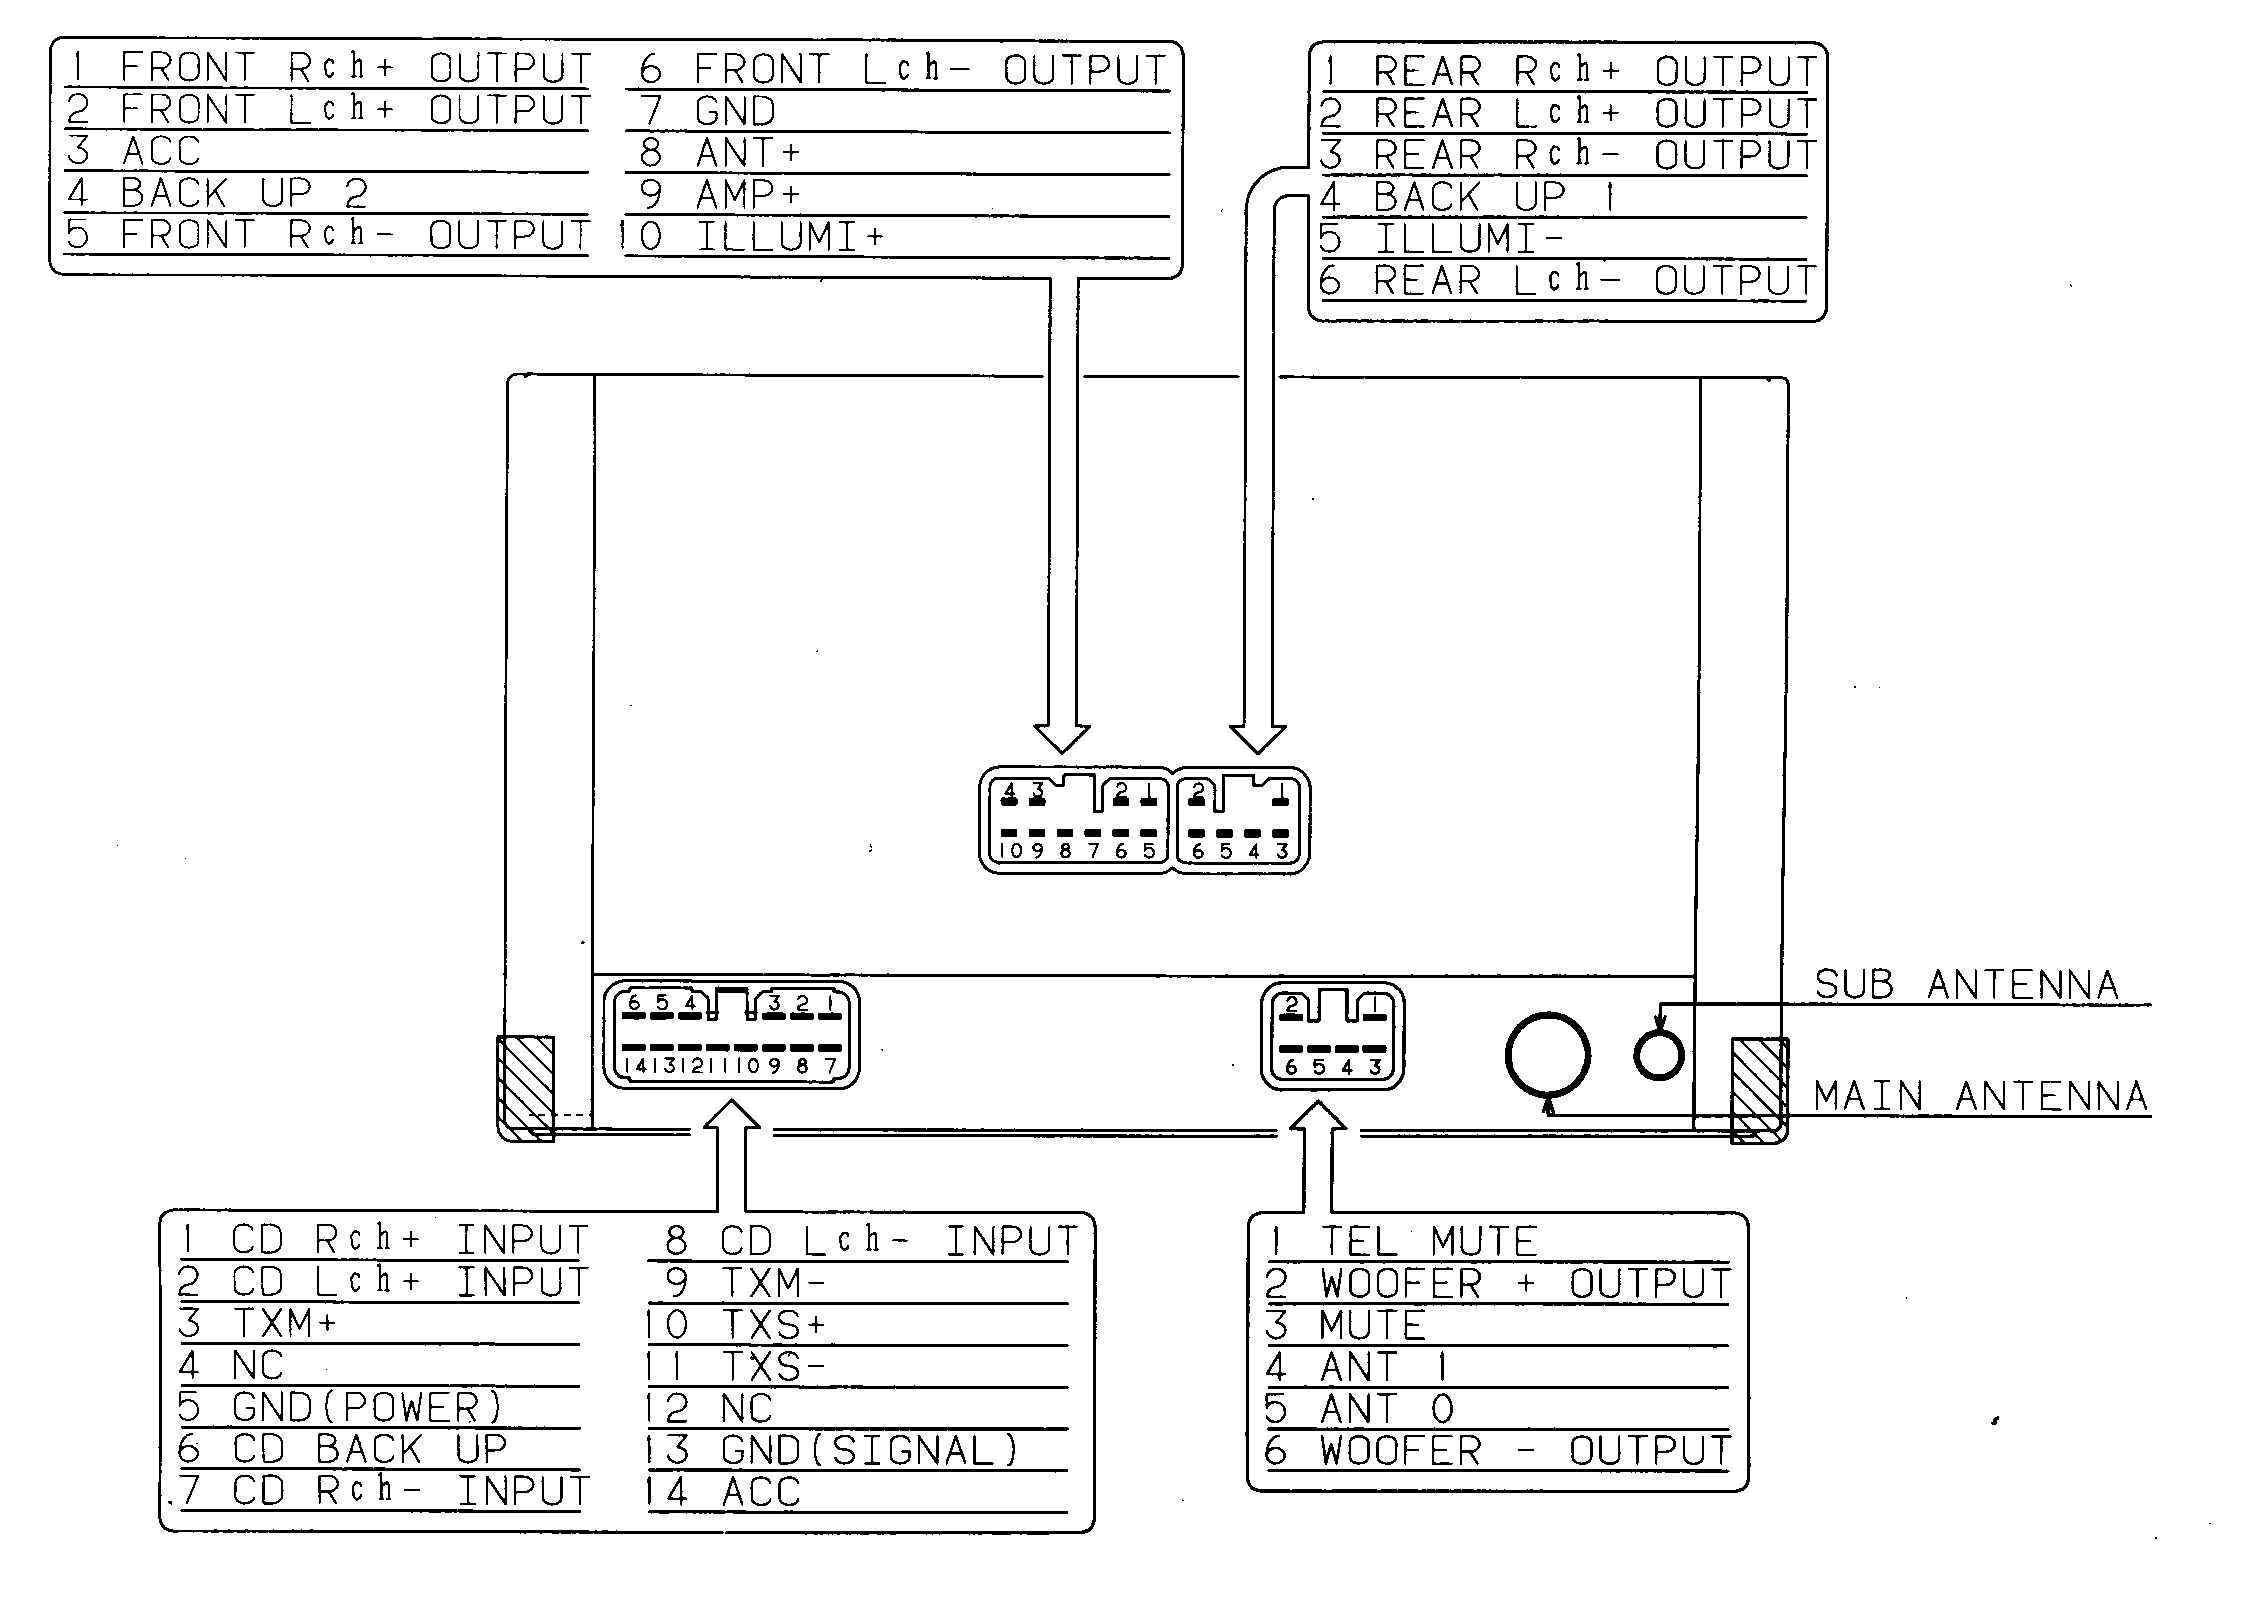 Lexus car stereo wiring diagram harness pinout connector wire 1996 jeep grand cherokee car stereo radio wiring diagram wiring 1996 jeep grand cherokee stereo wiring diagram at gsmx.co